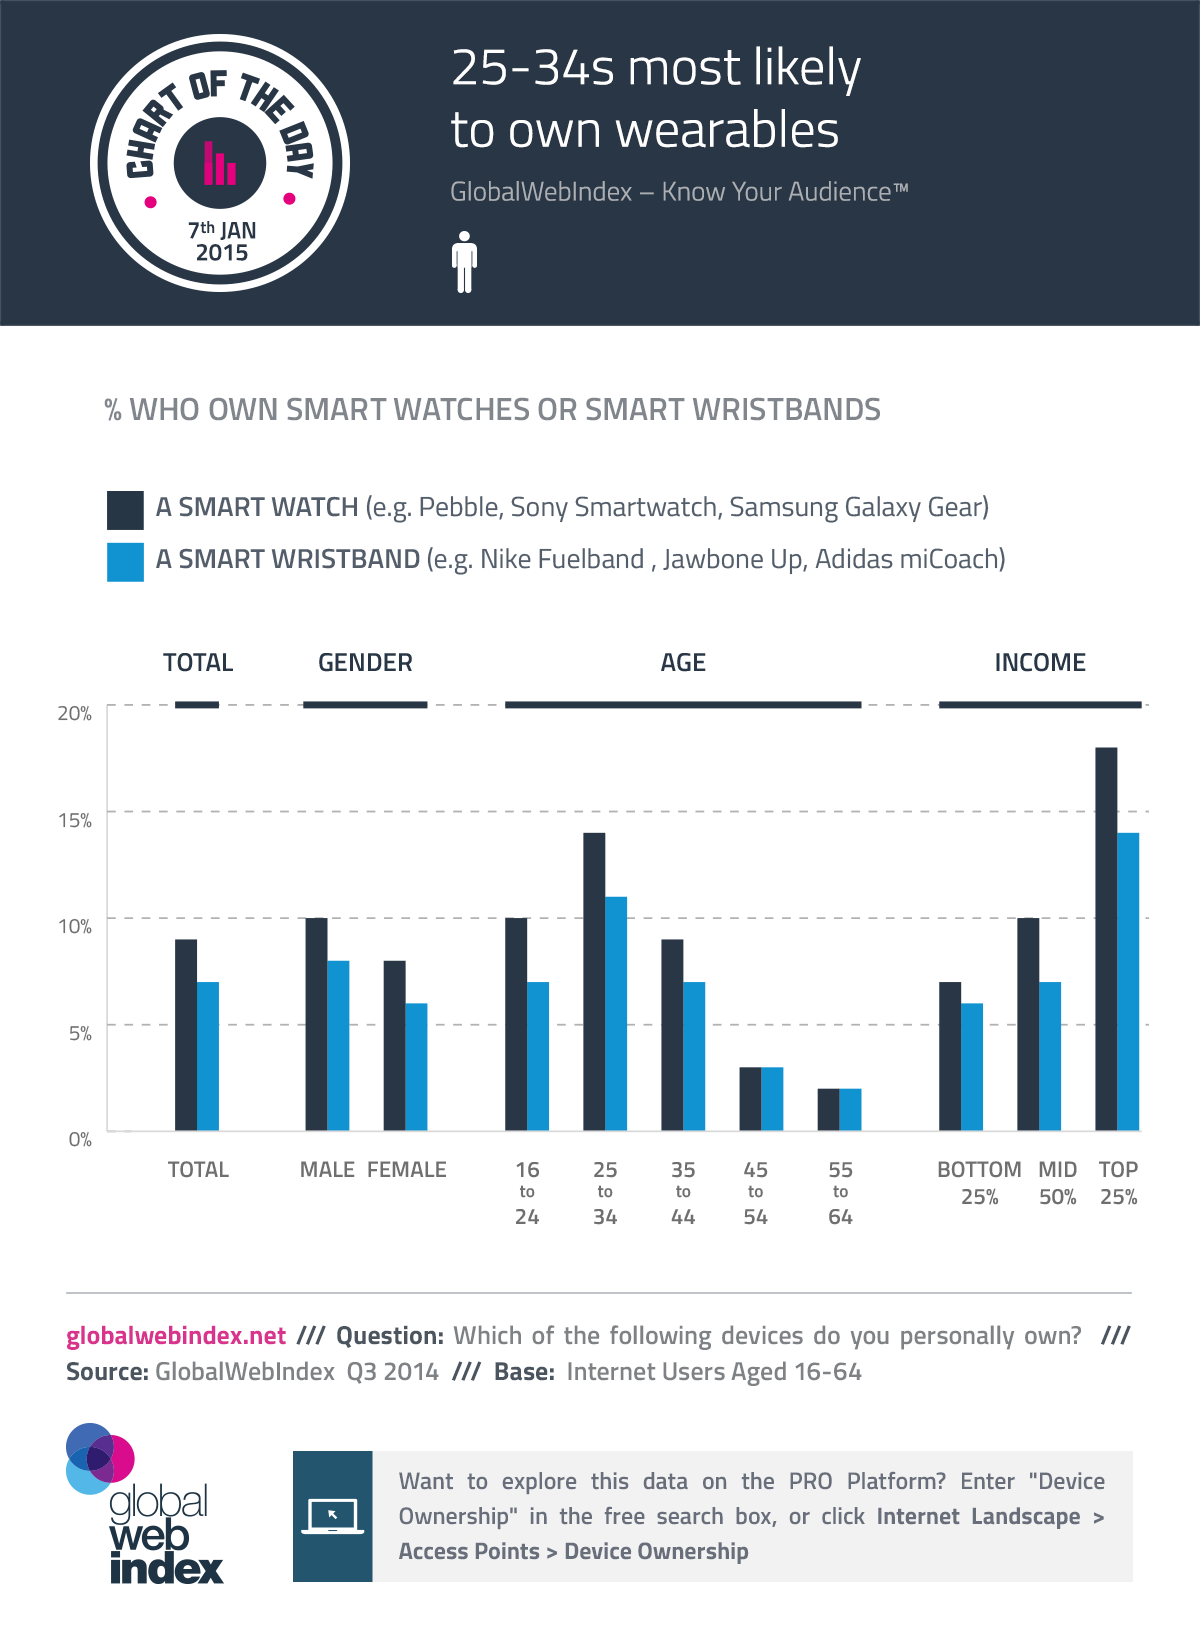 25-34s most likely to own wearables